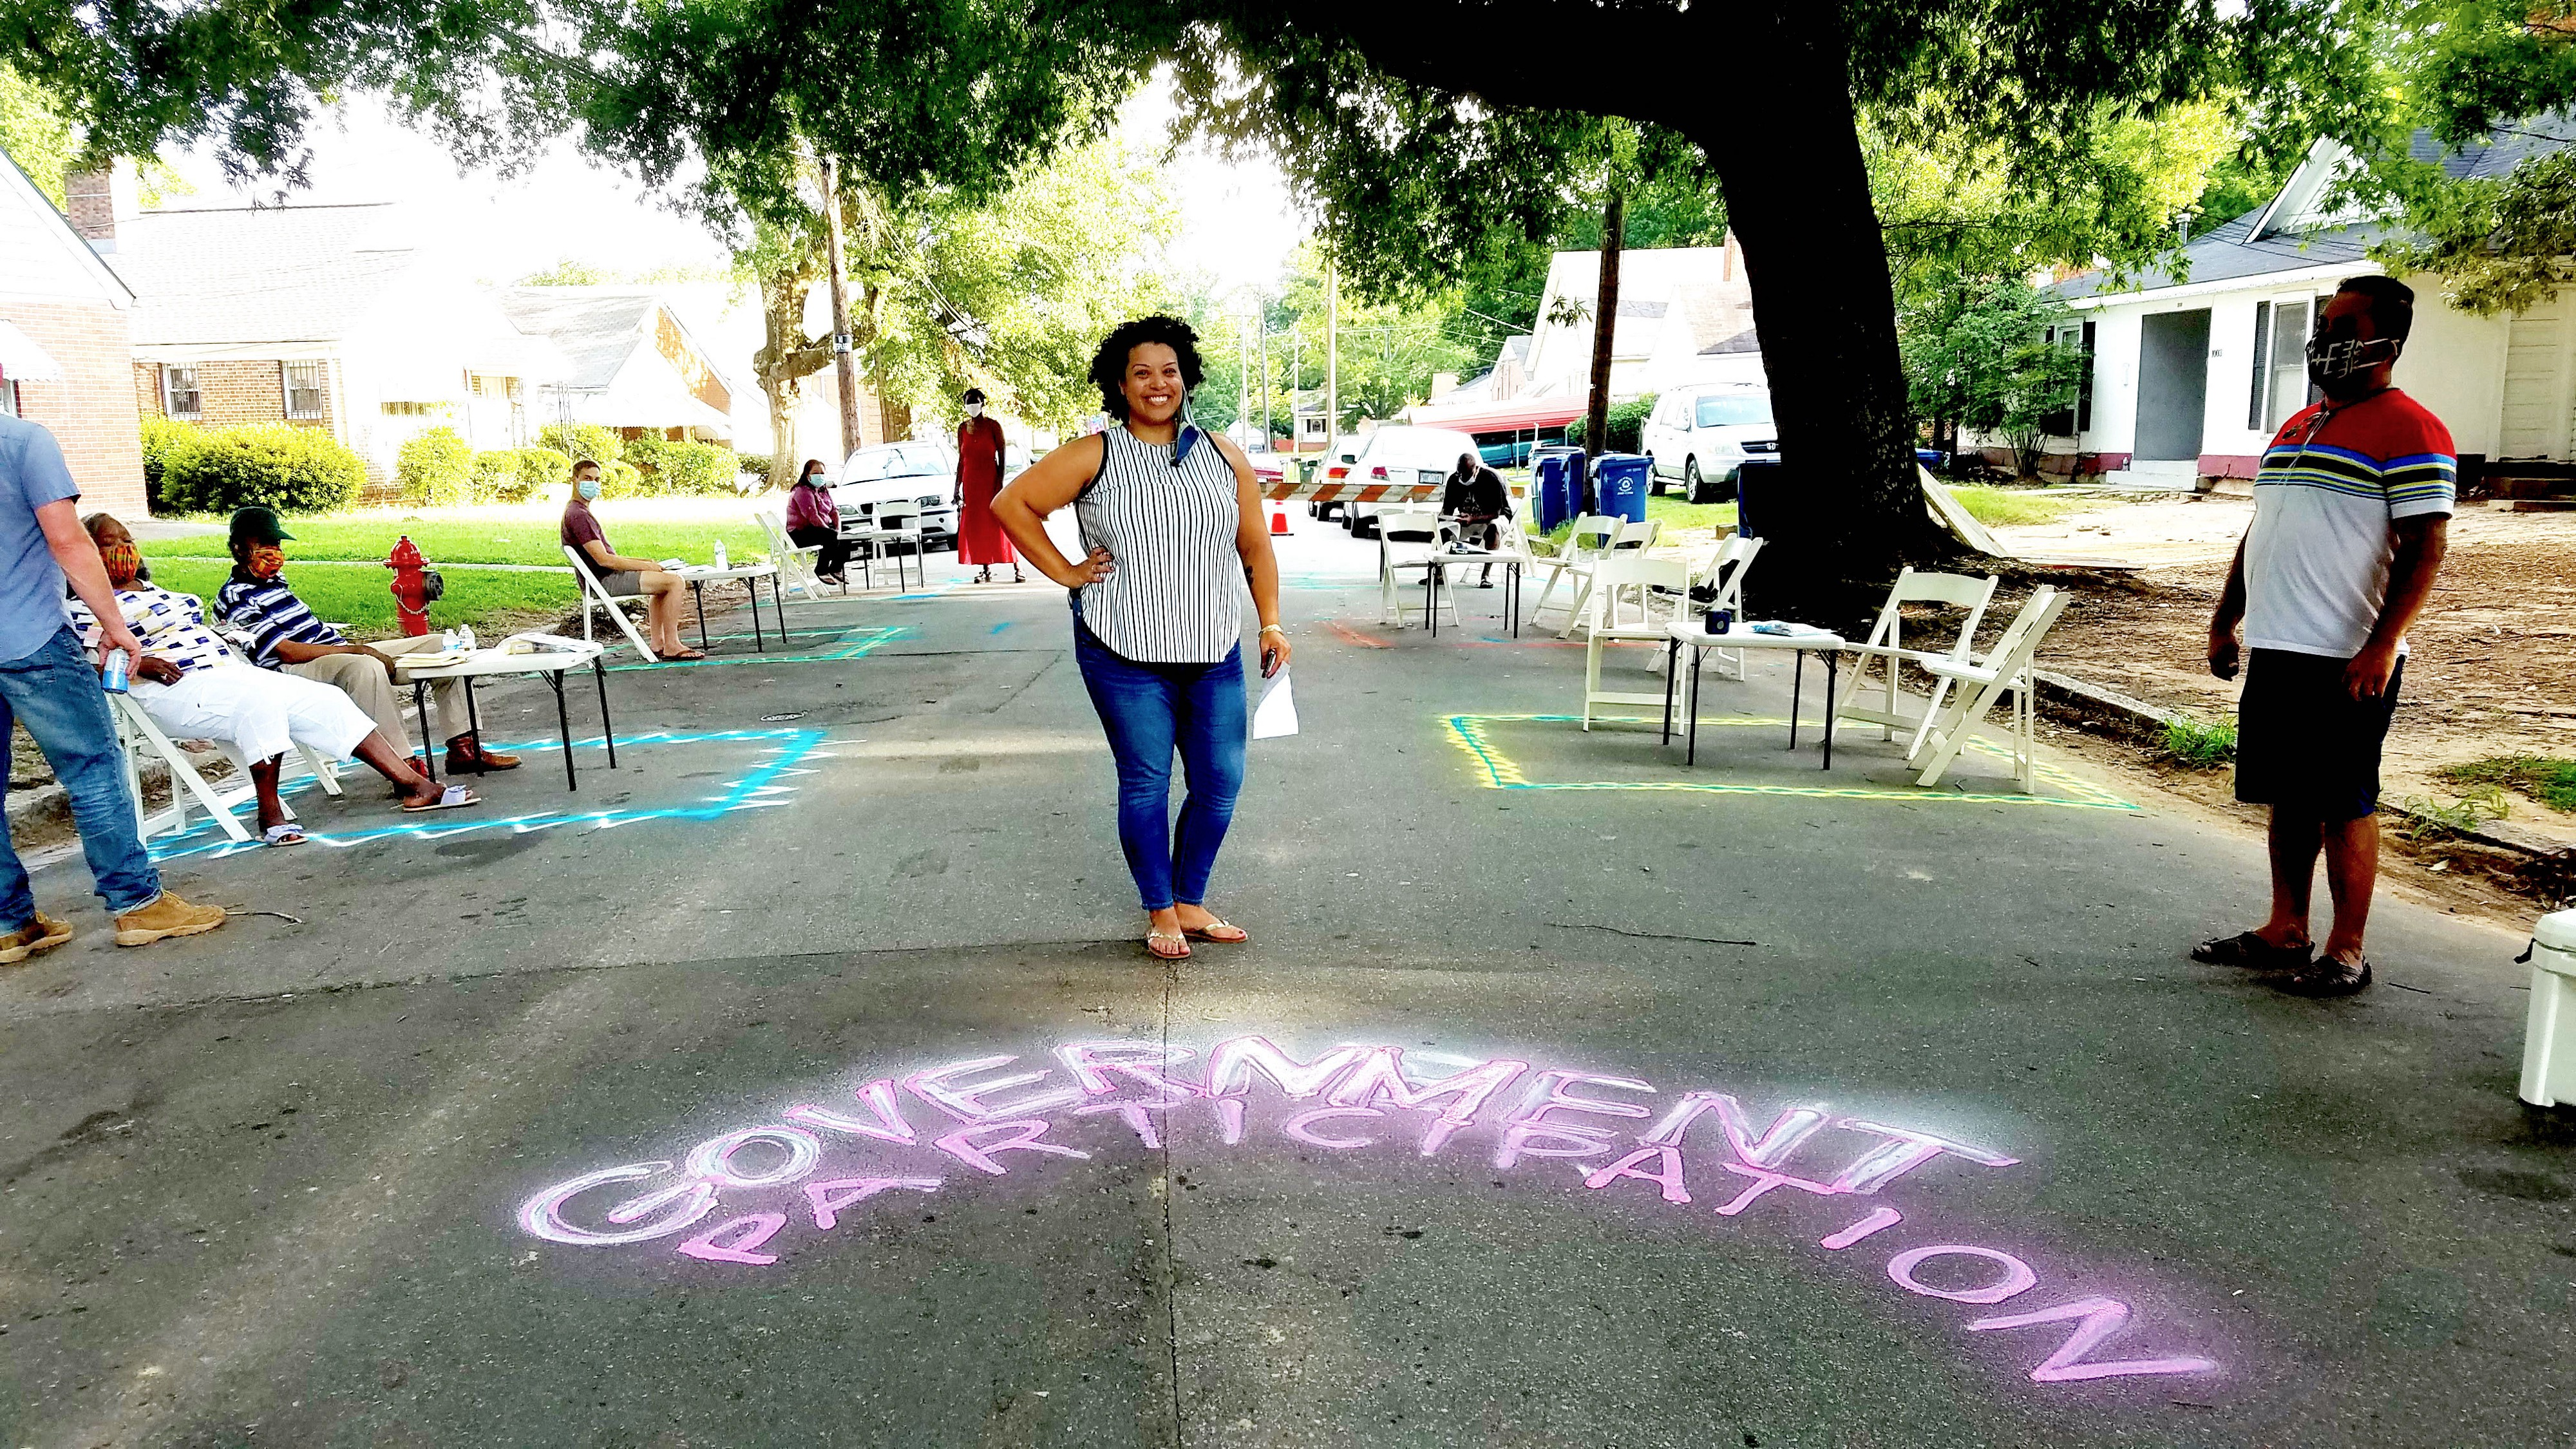 """Aidil Ortiz stands in the middle of a residential street, smiling. At her feet is written """"Government participation"""" in chalk paint. Along the curb on either side of her are tables with chairs set up, so residents can meet and discuss."""